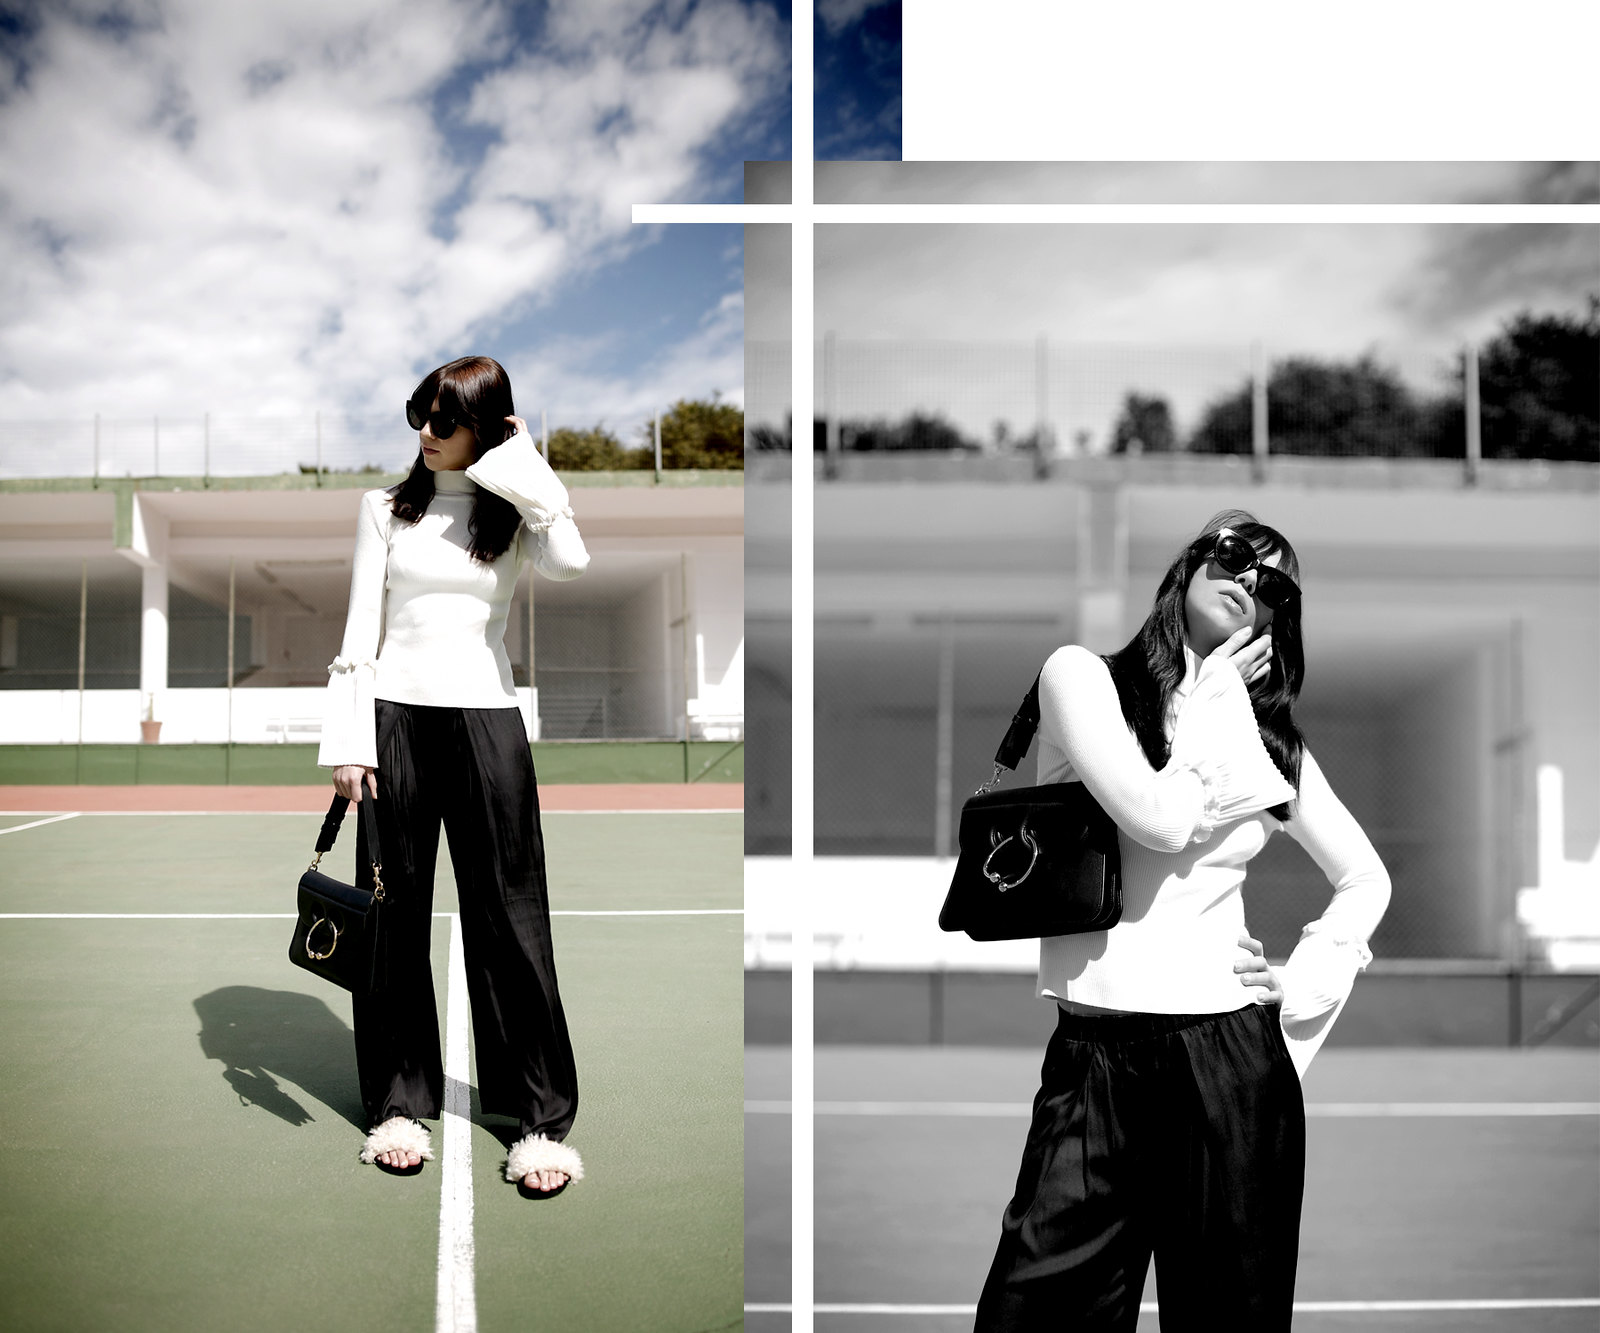 tennis edgy styling editorial photography chicwish white knit bell sleeves silk pants summer heat style céline audrey sunglasses j.w.anderson pierce bag zara sandals shadows fashionblogger outfit ootd modeblog cats & dogs ricarda schernus düsseldorf 3